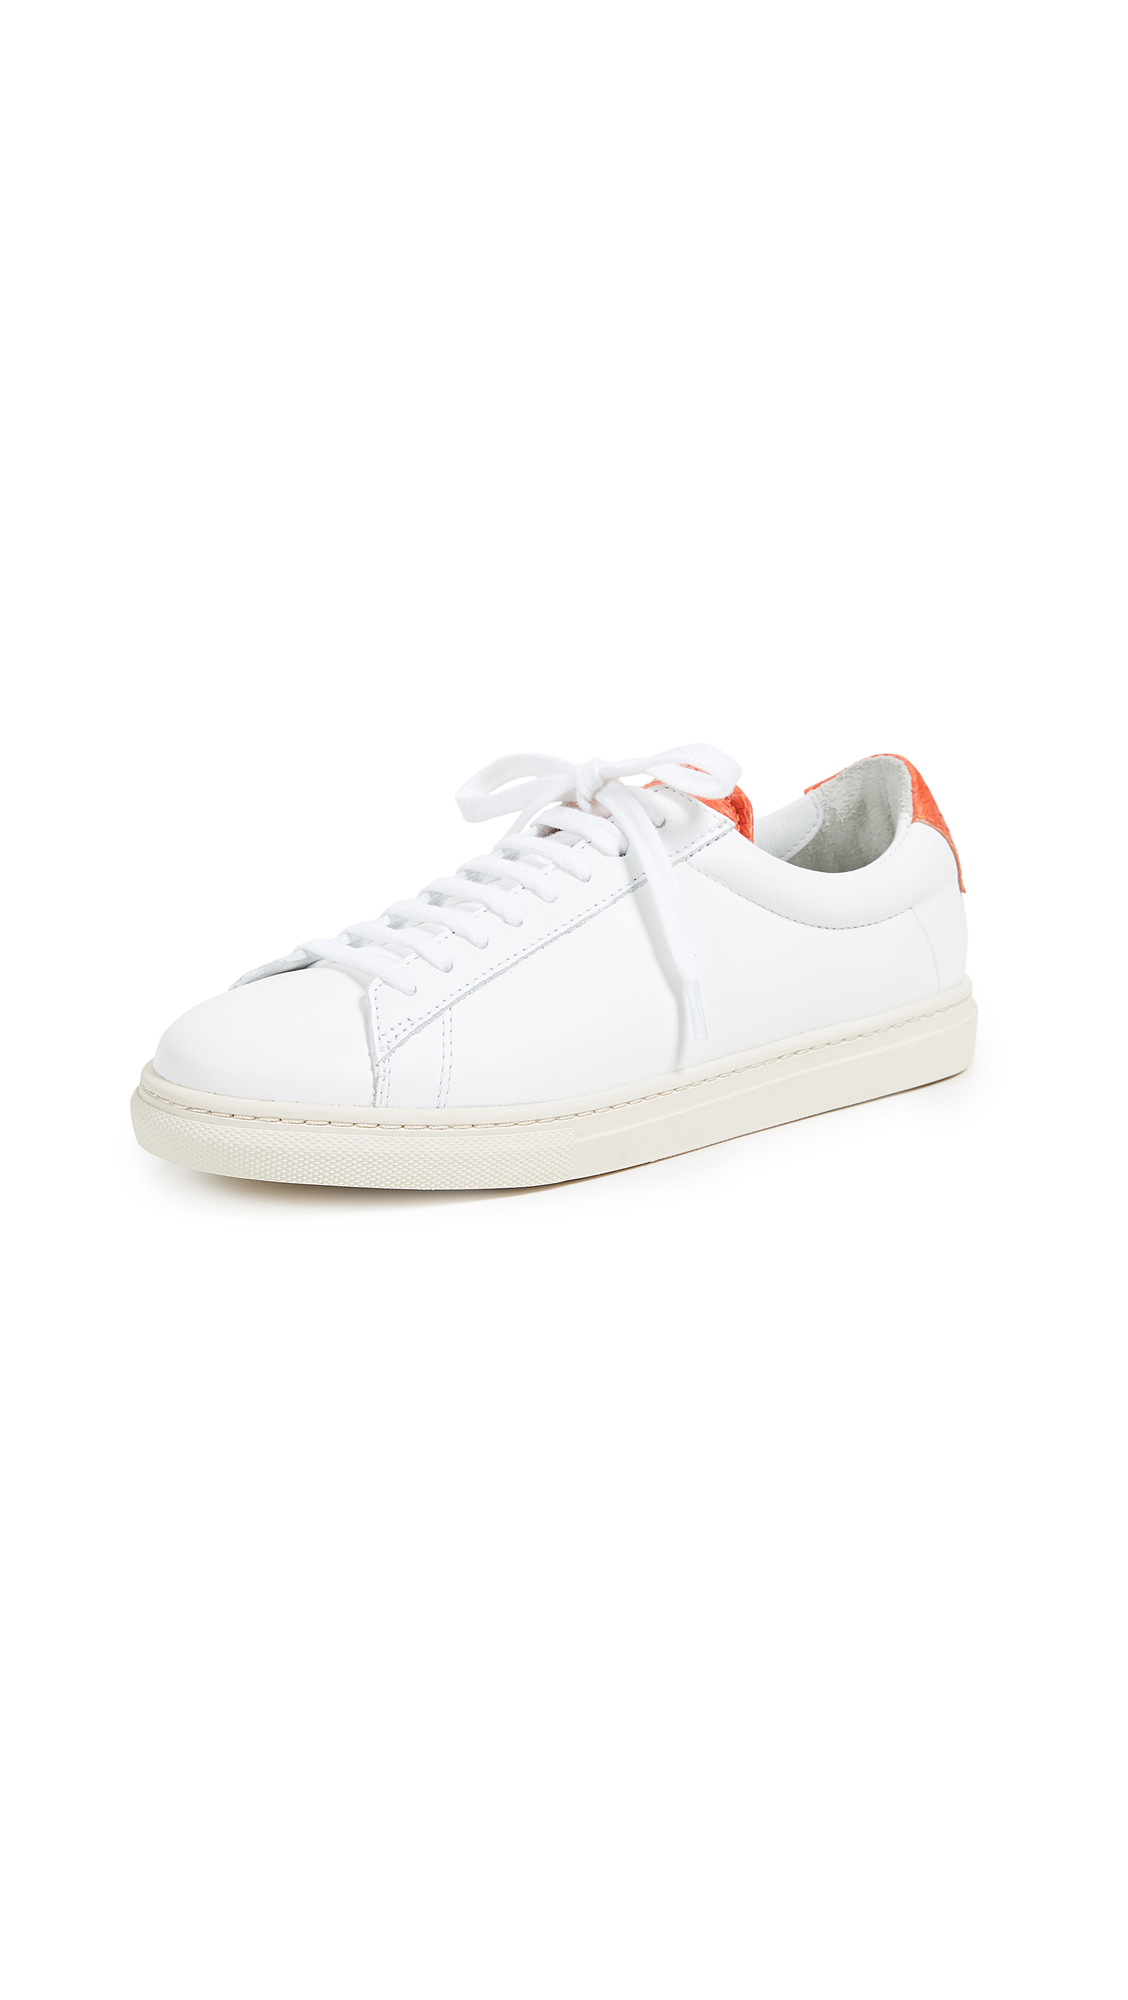 Zespa Lace Up Sneakers - White/Orange